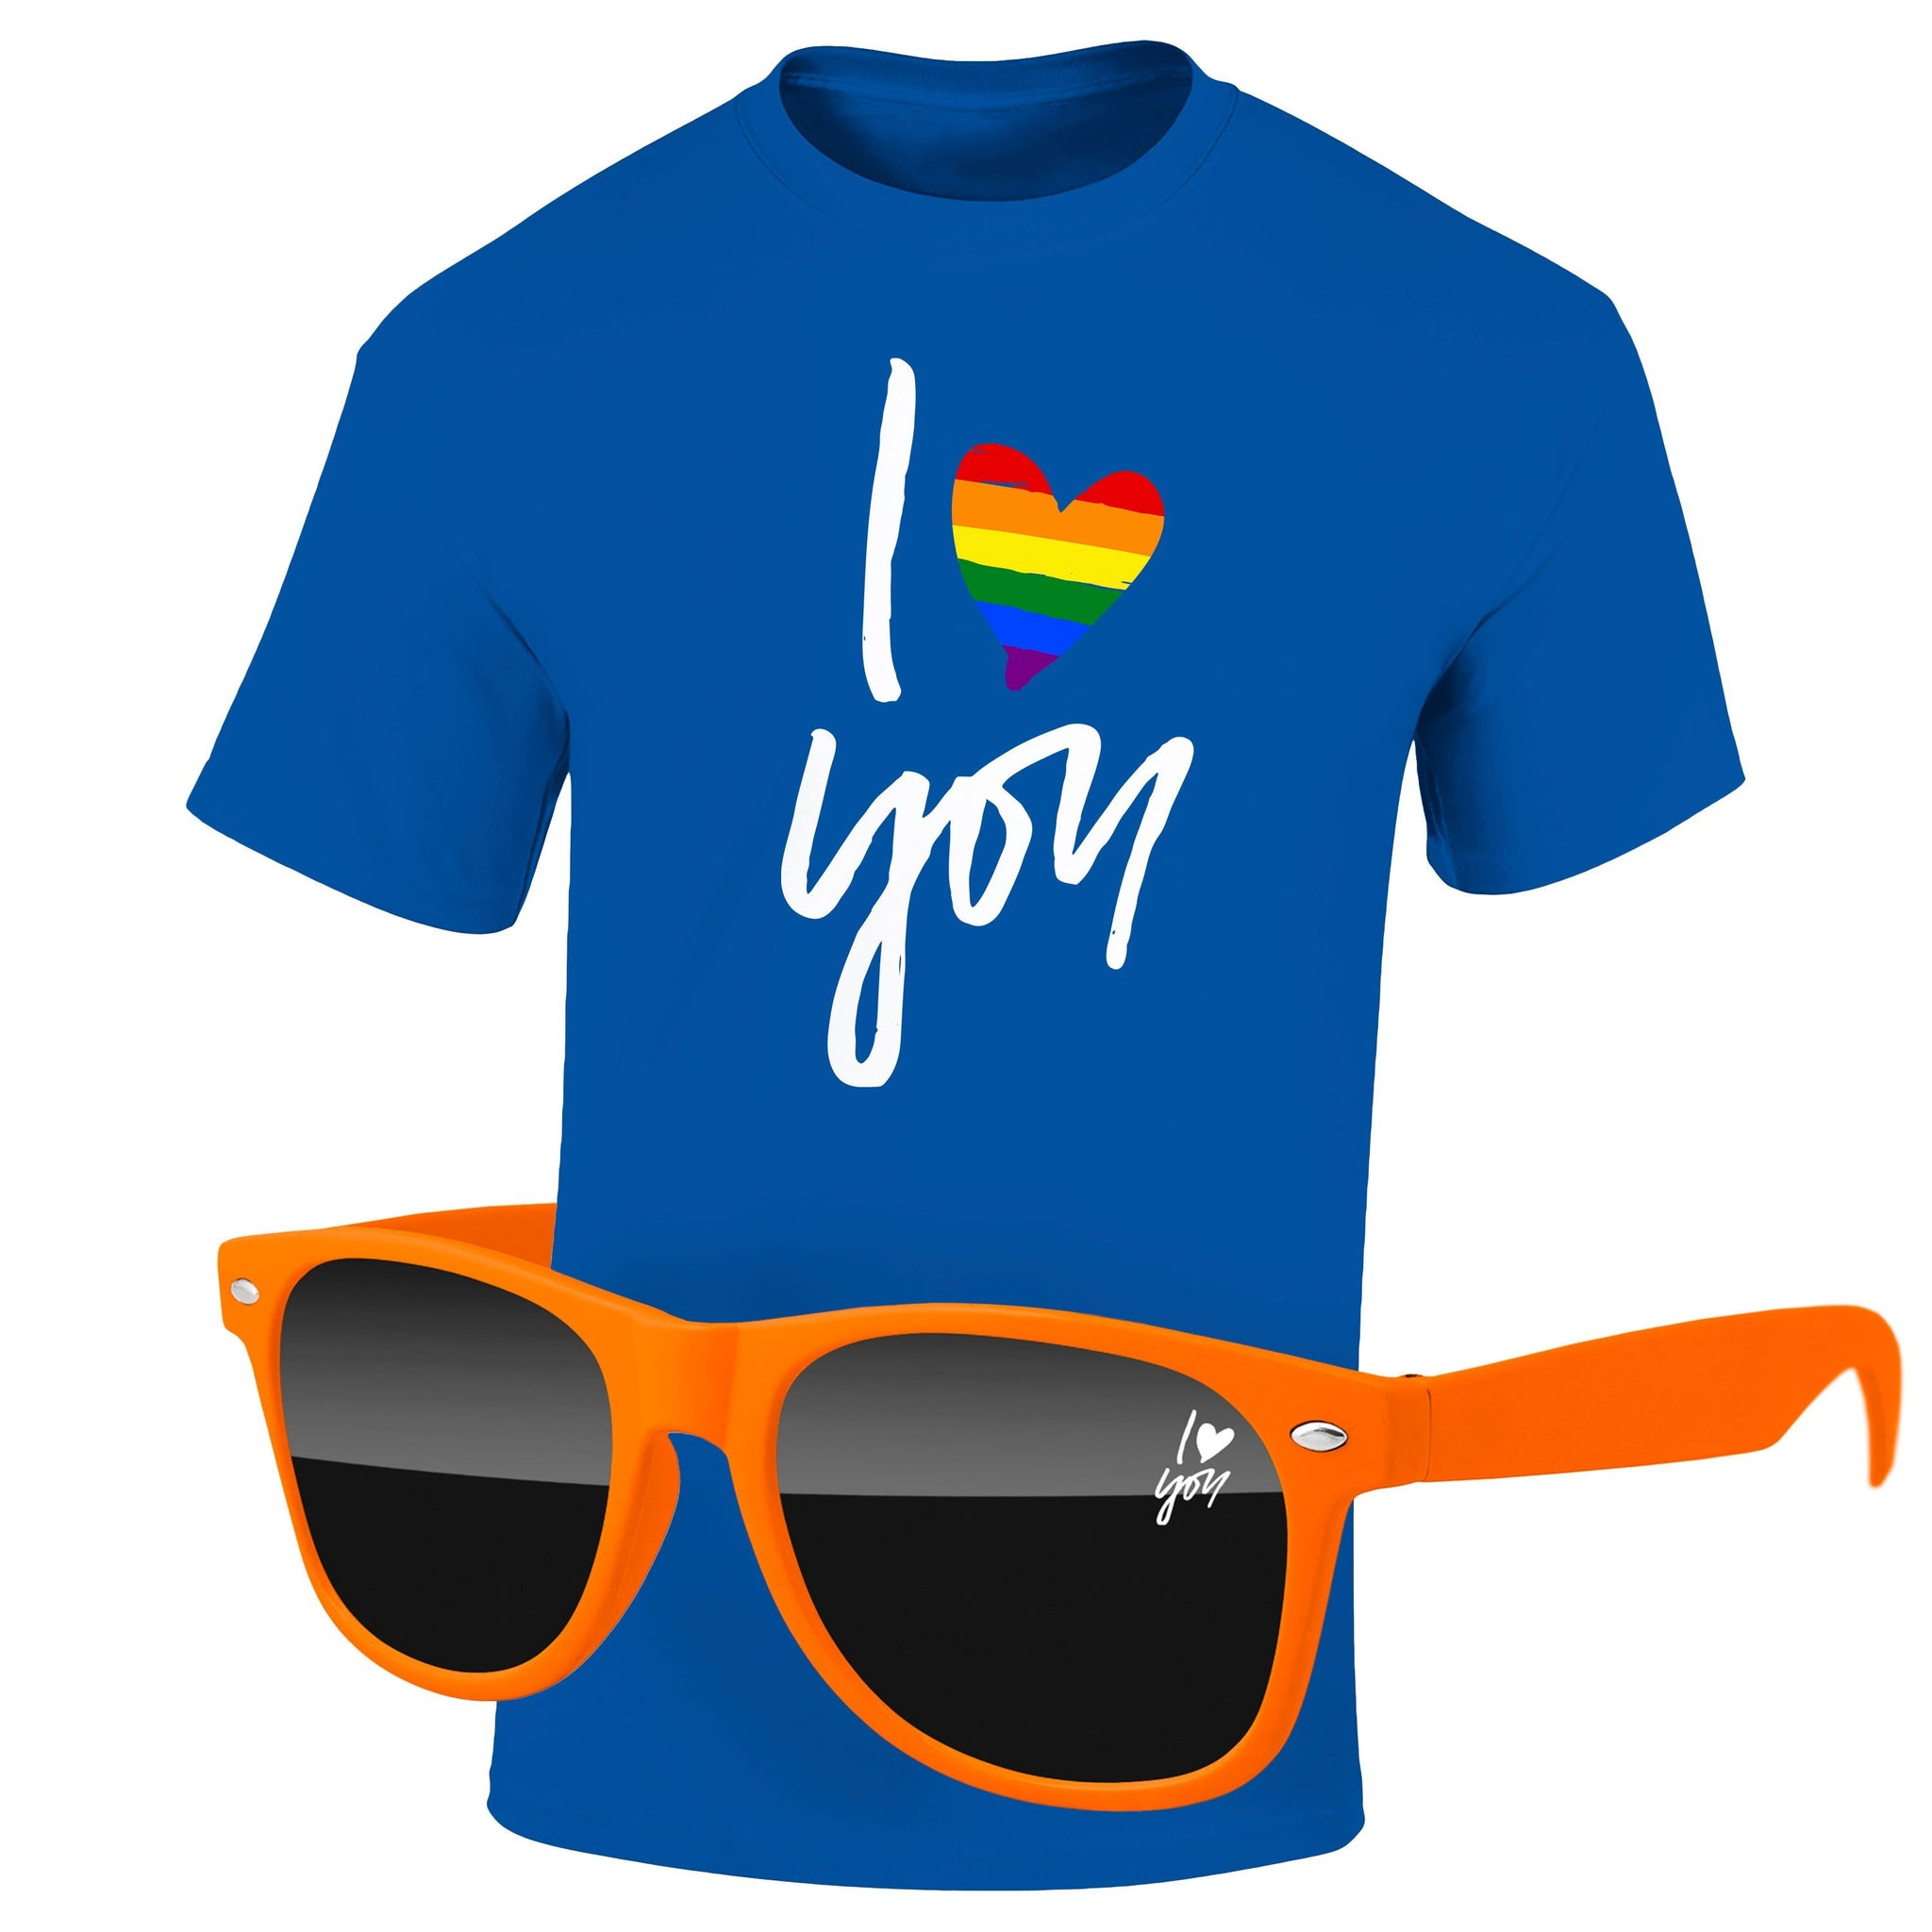 "4980-1KD12 - Pride T-Shirt & Sunglasses Kit - Full-Color On Color/Black T-Shirt (Up To 12""x12"")"